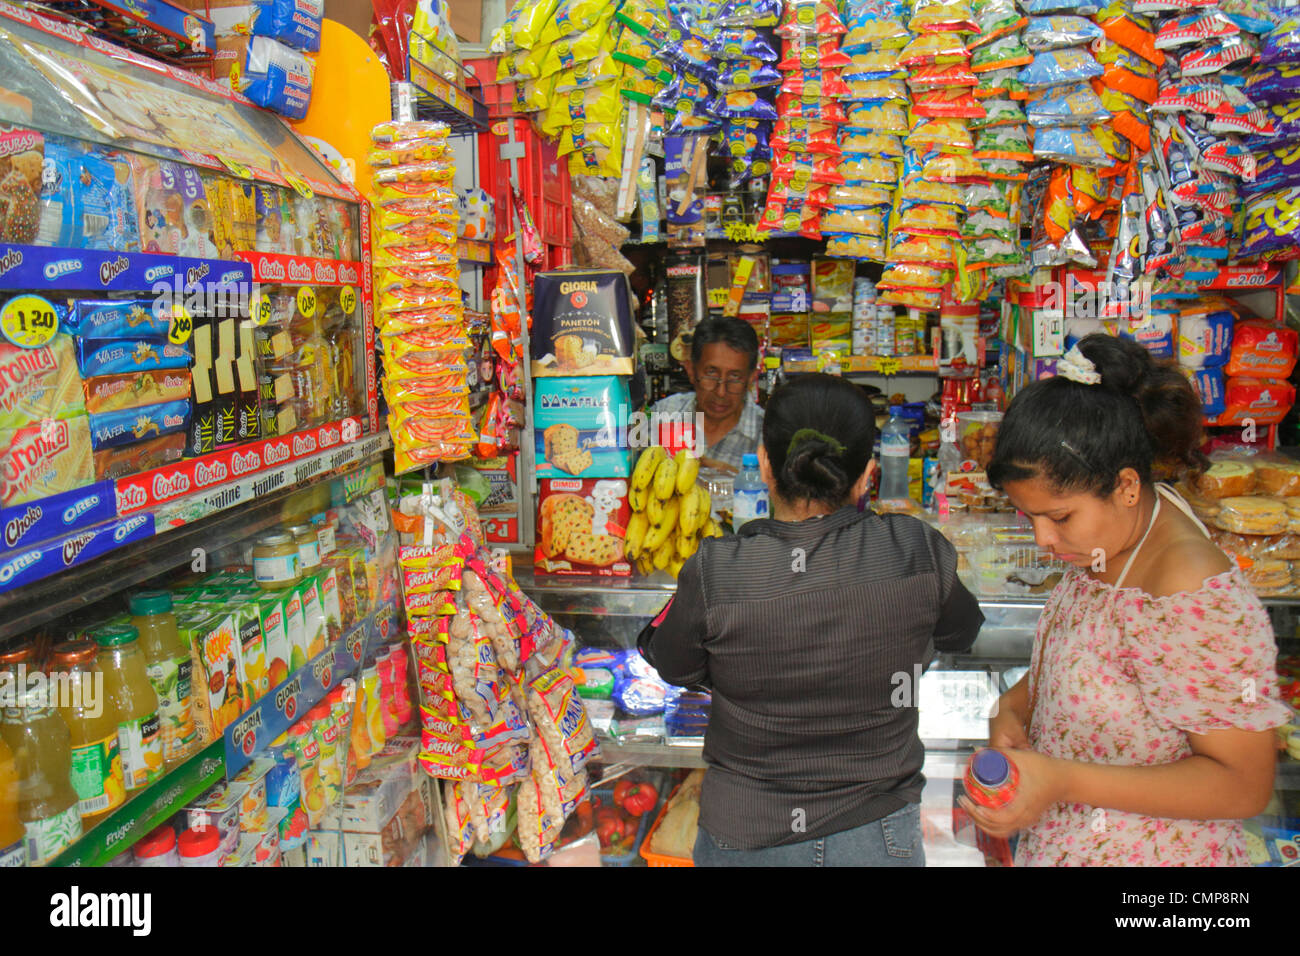 Convenience Store Stock Photos & Convenience Store Stock Images - Alamy